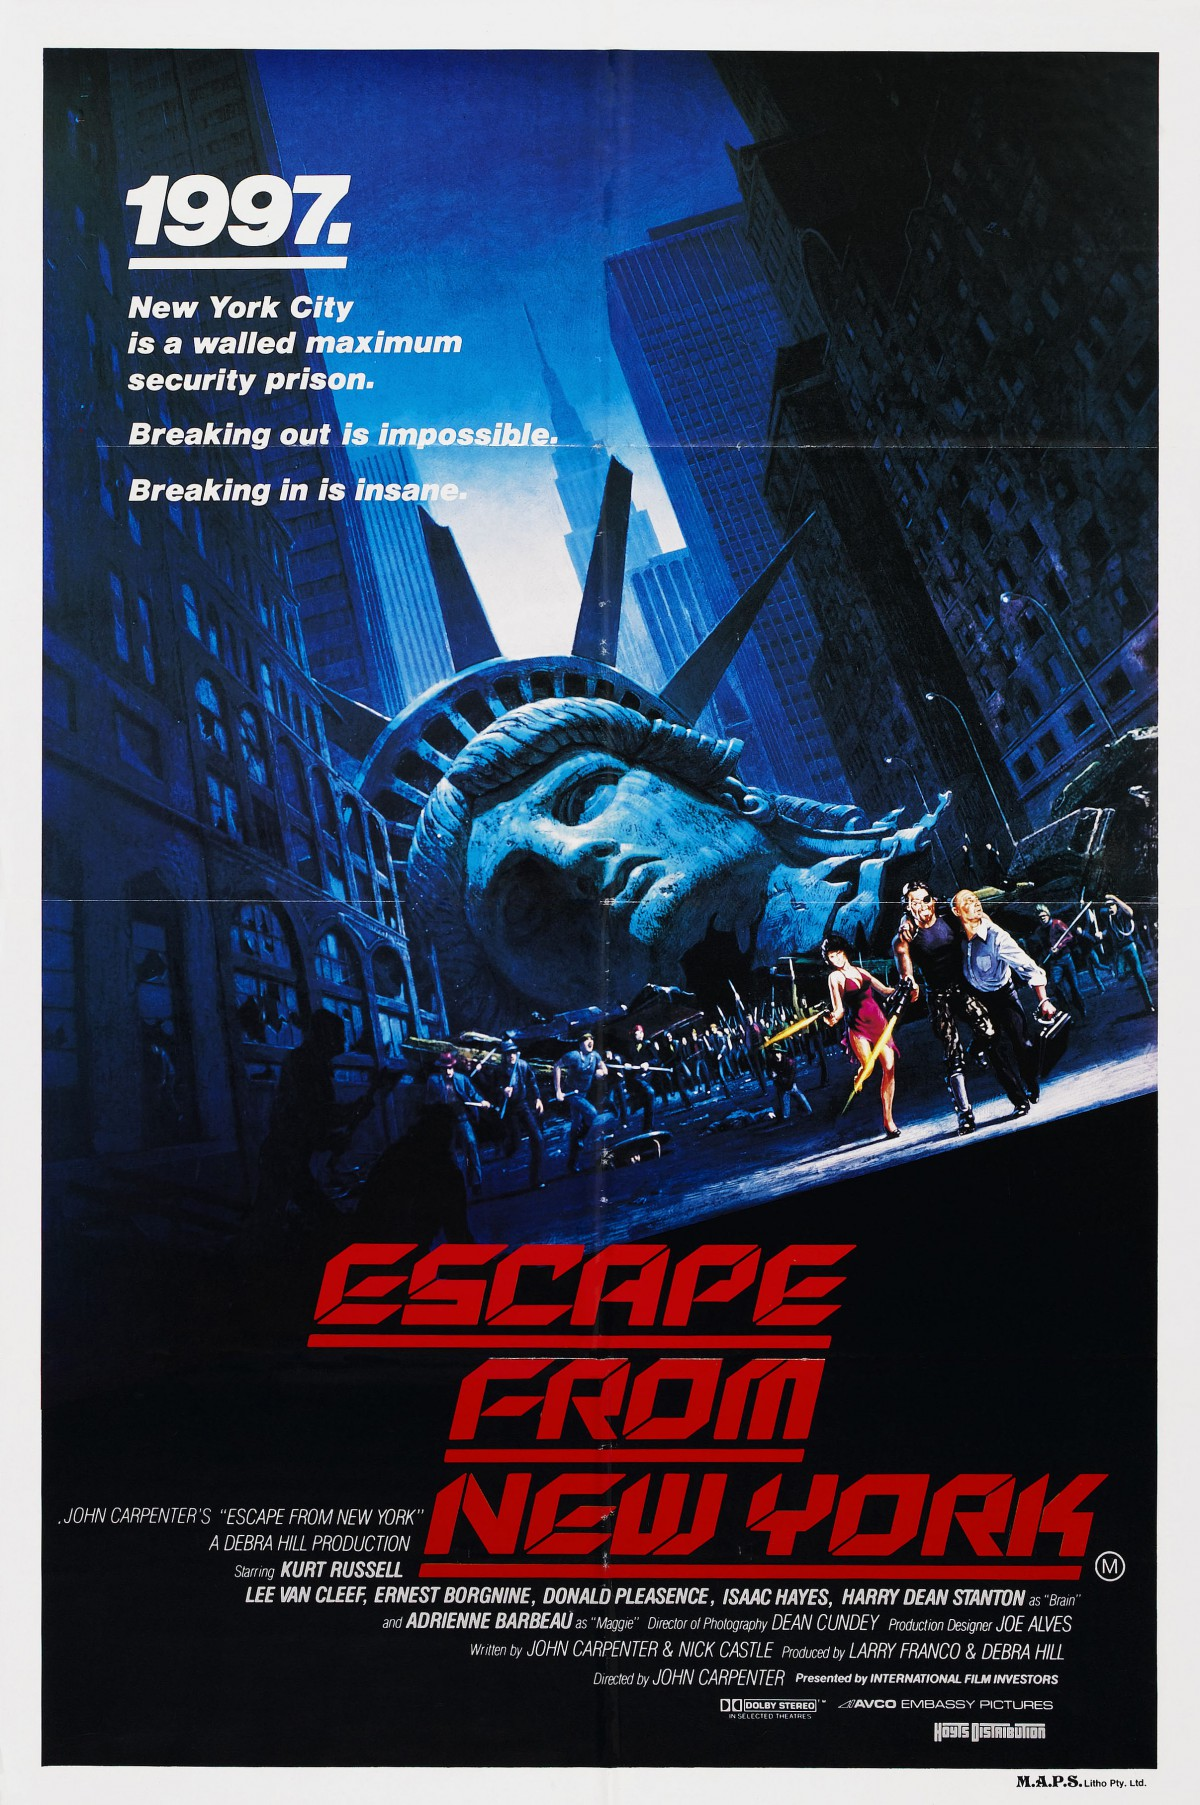 48. Escape from New York (1981)